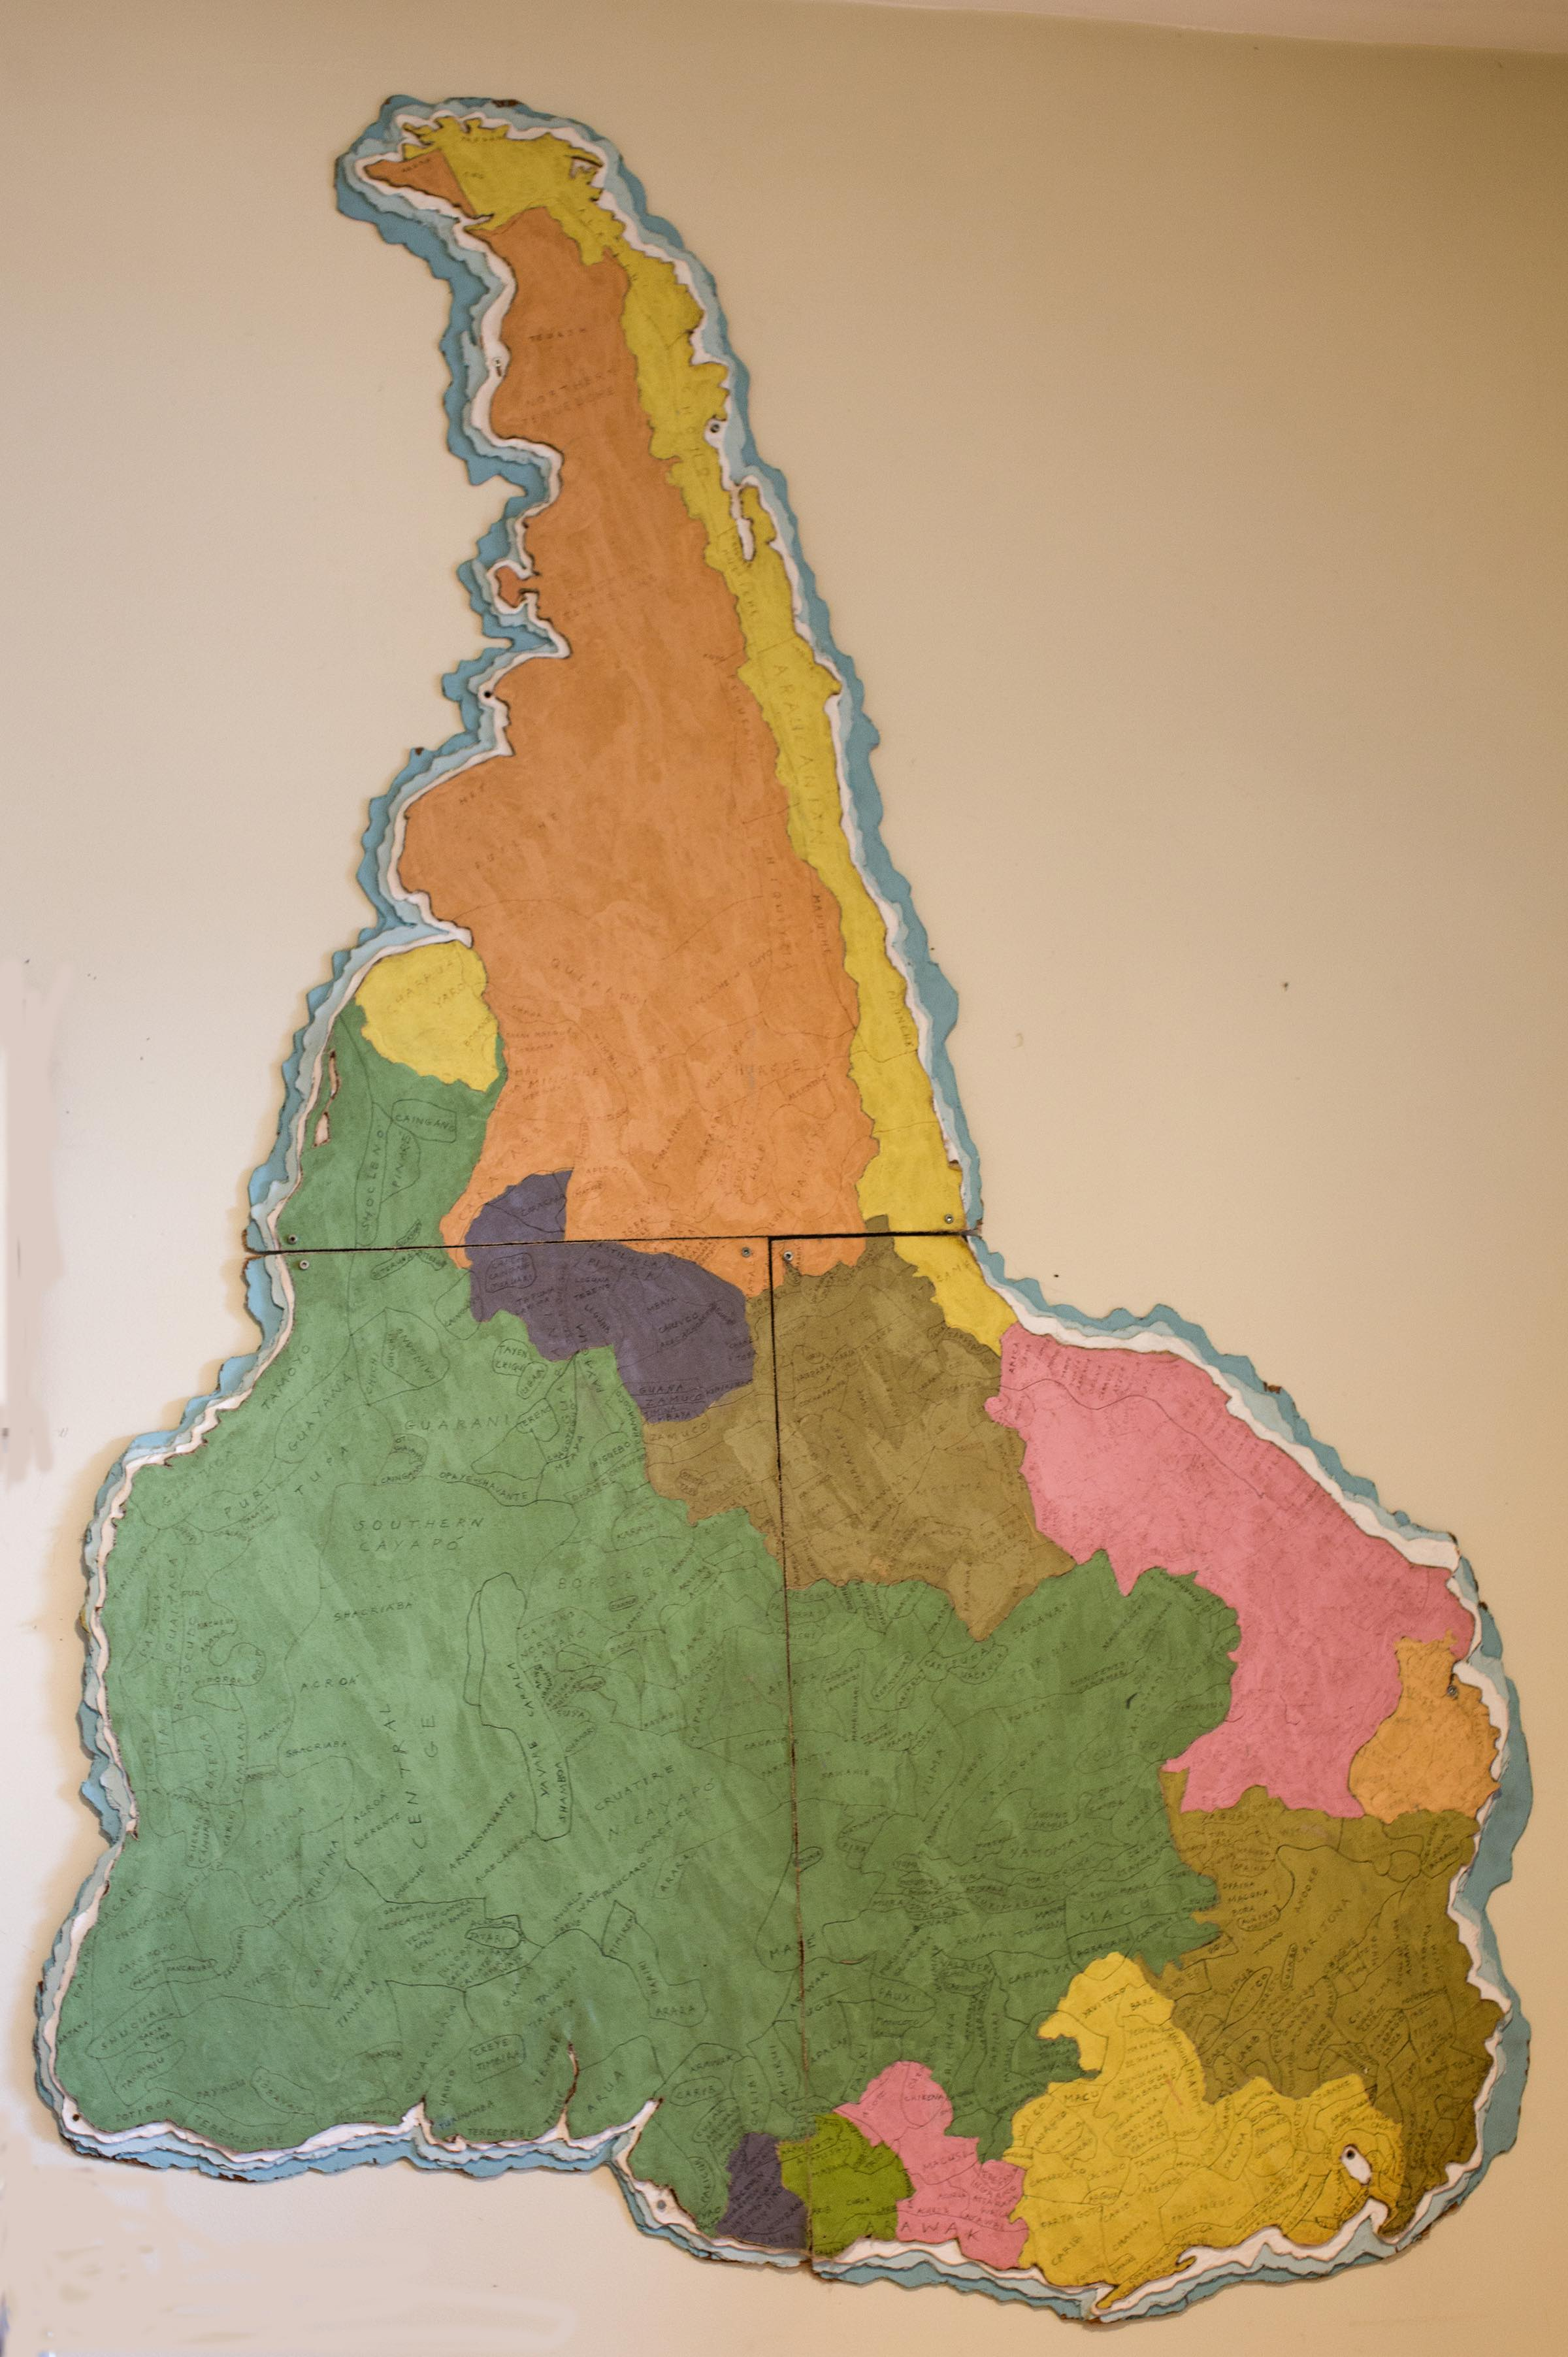 Indigenous map of South America.